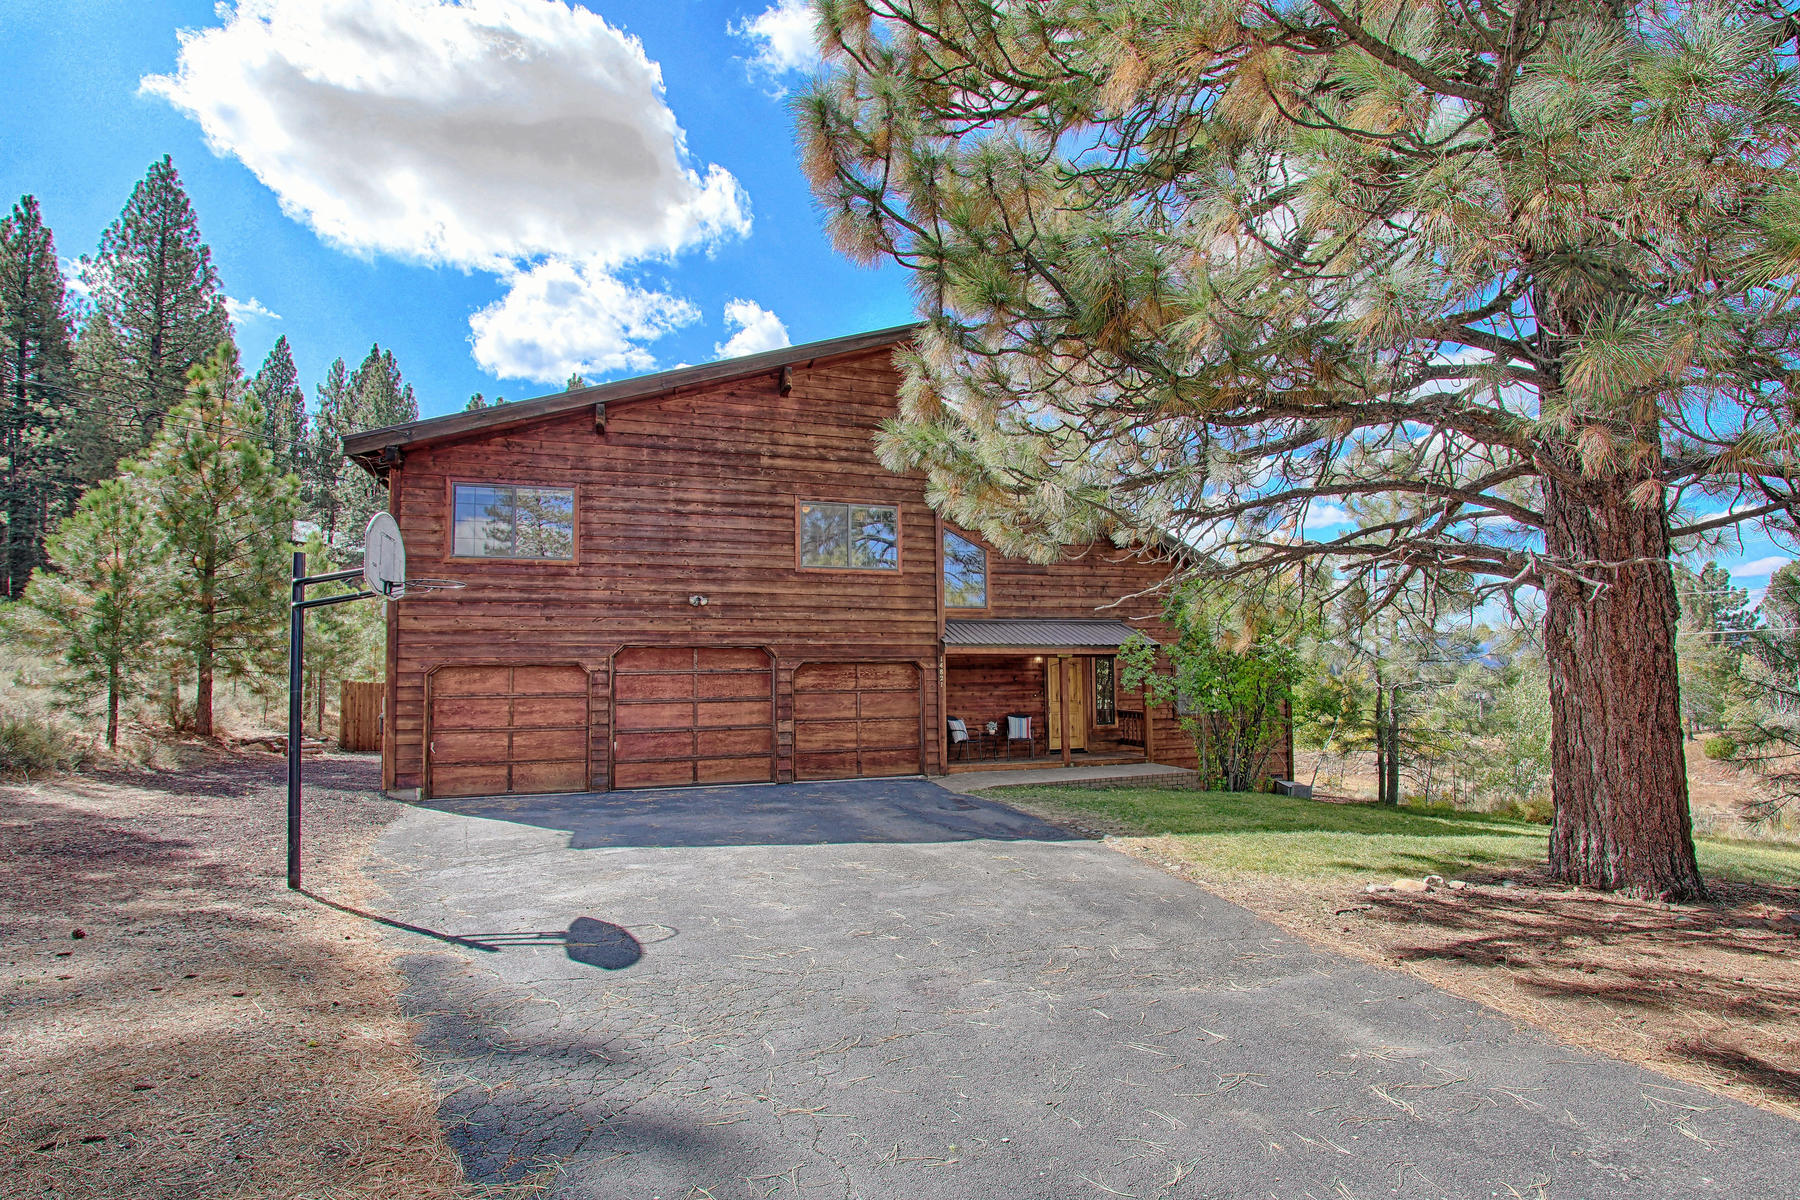 Single Family Homes for Active at 14821 Berkshire Circle, Truckee, Ca 96161 14821 Berkshire Circle Truckee, California 96161 United States